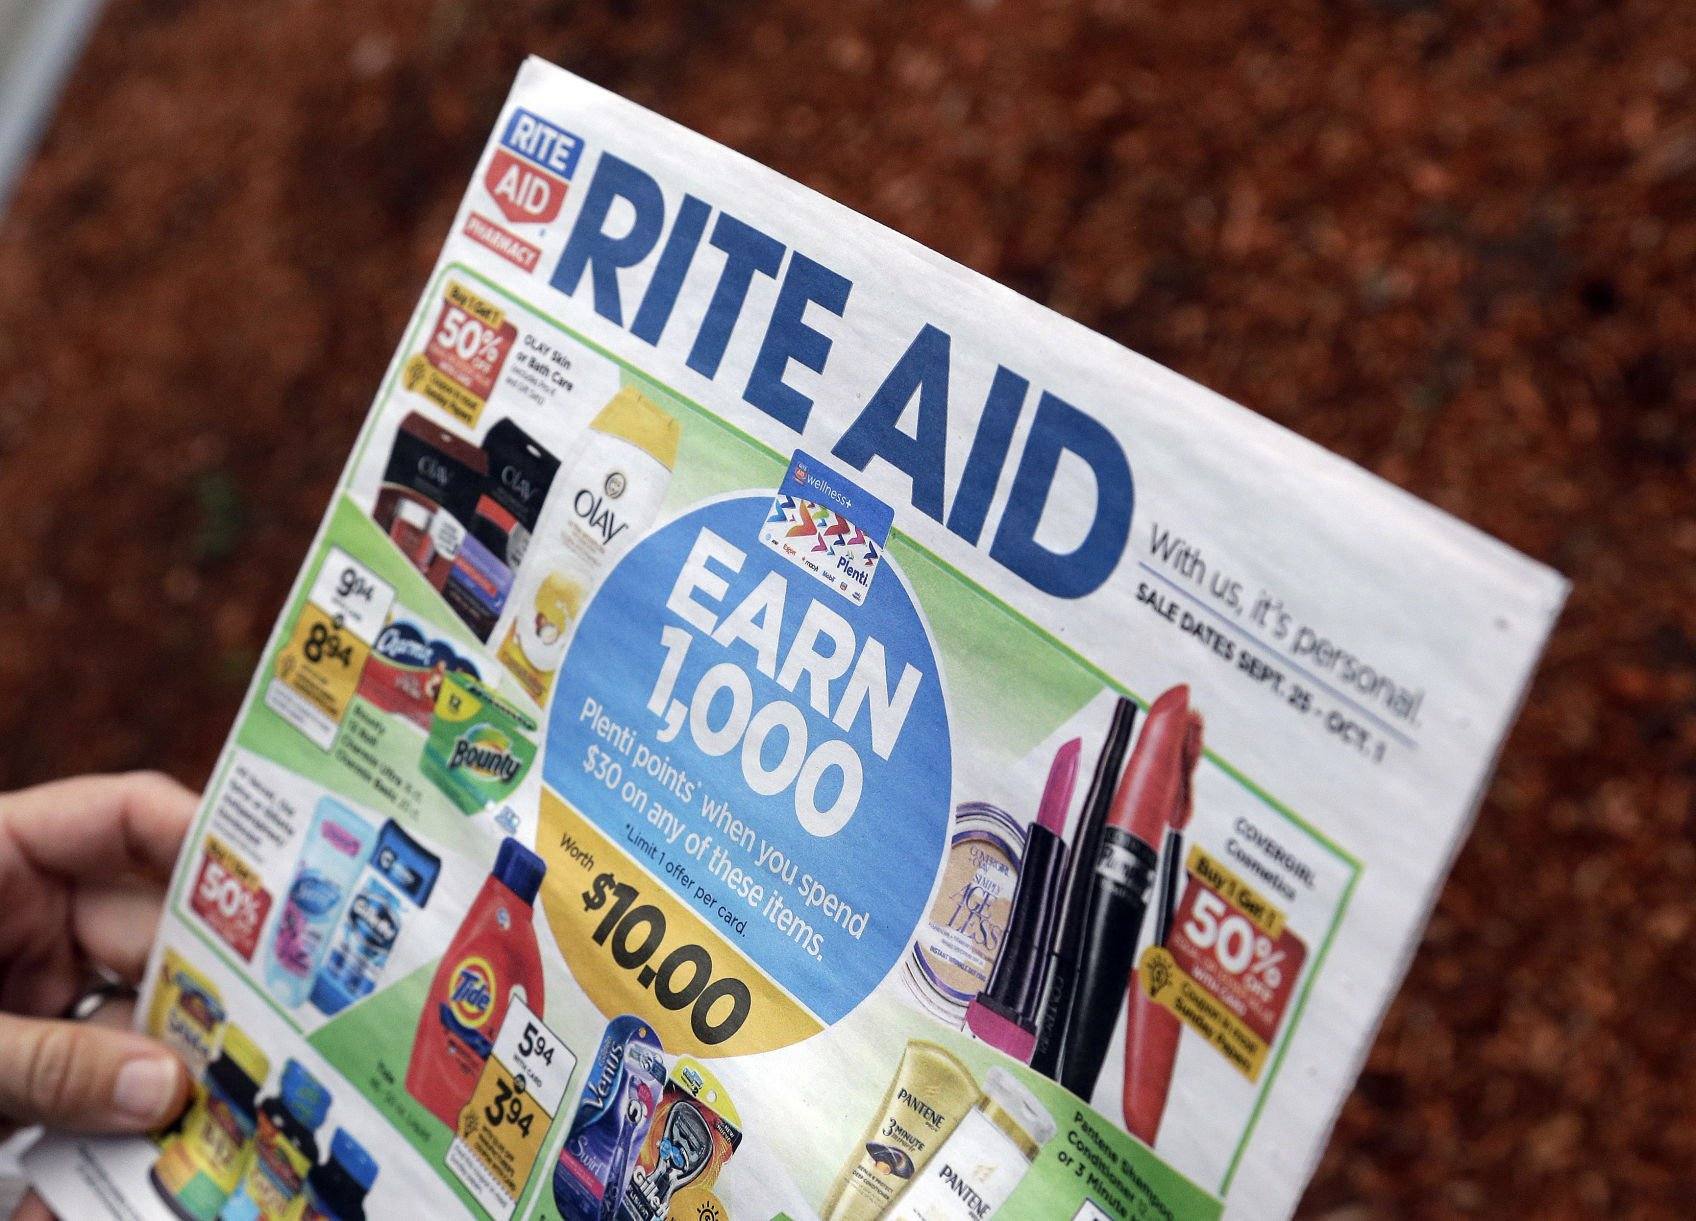 Tracking Shares of Rite Aid Corporation (NYSE:RAD)